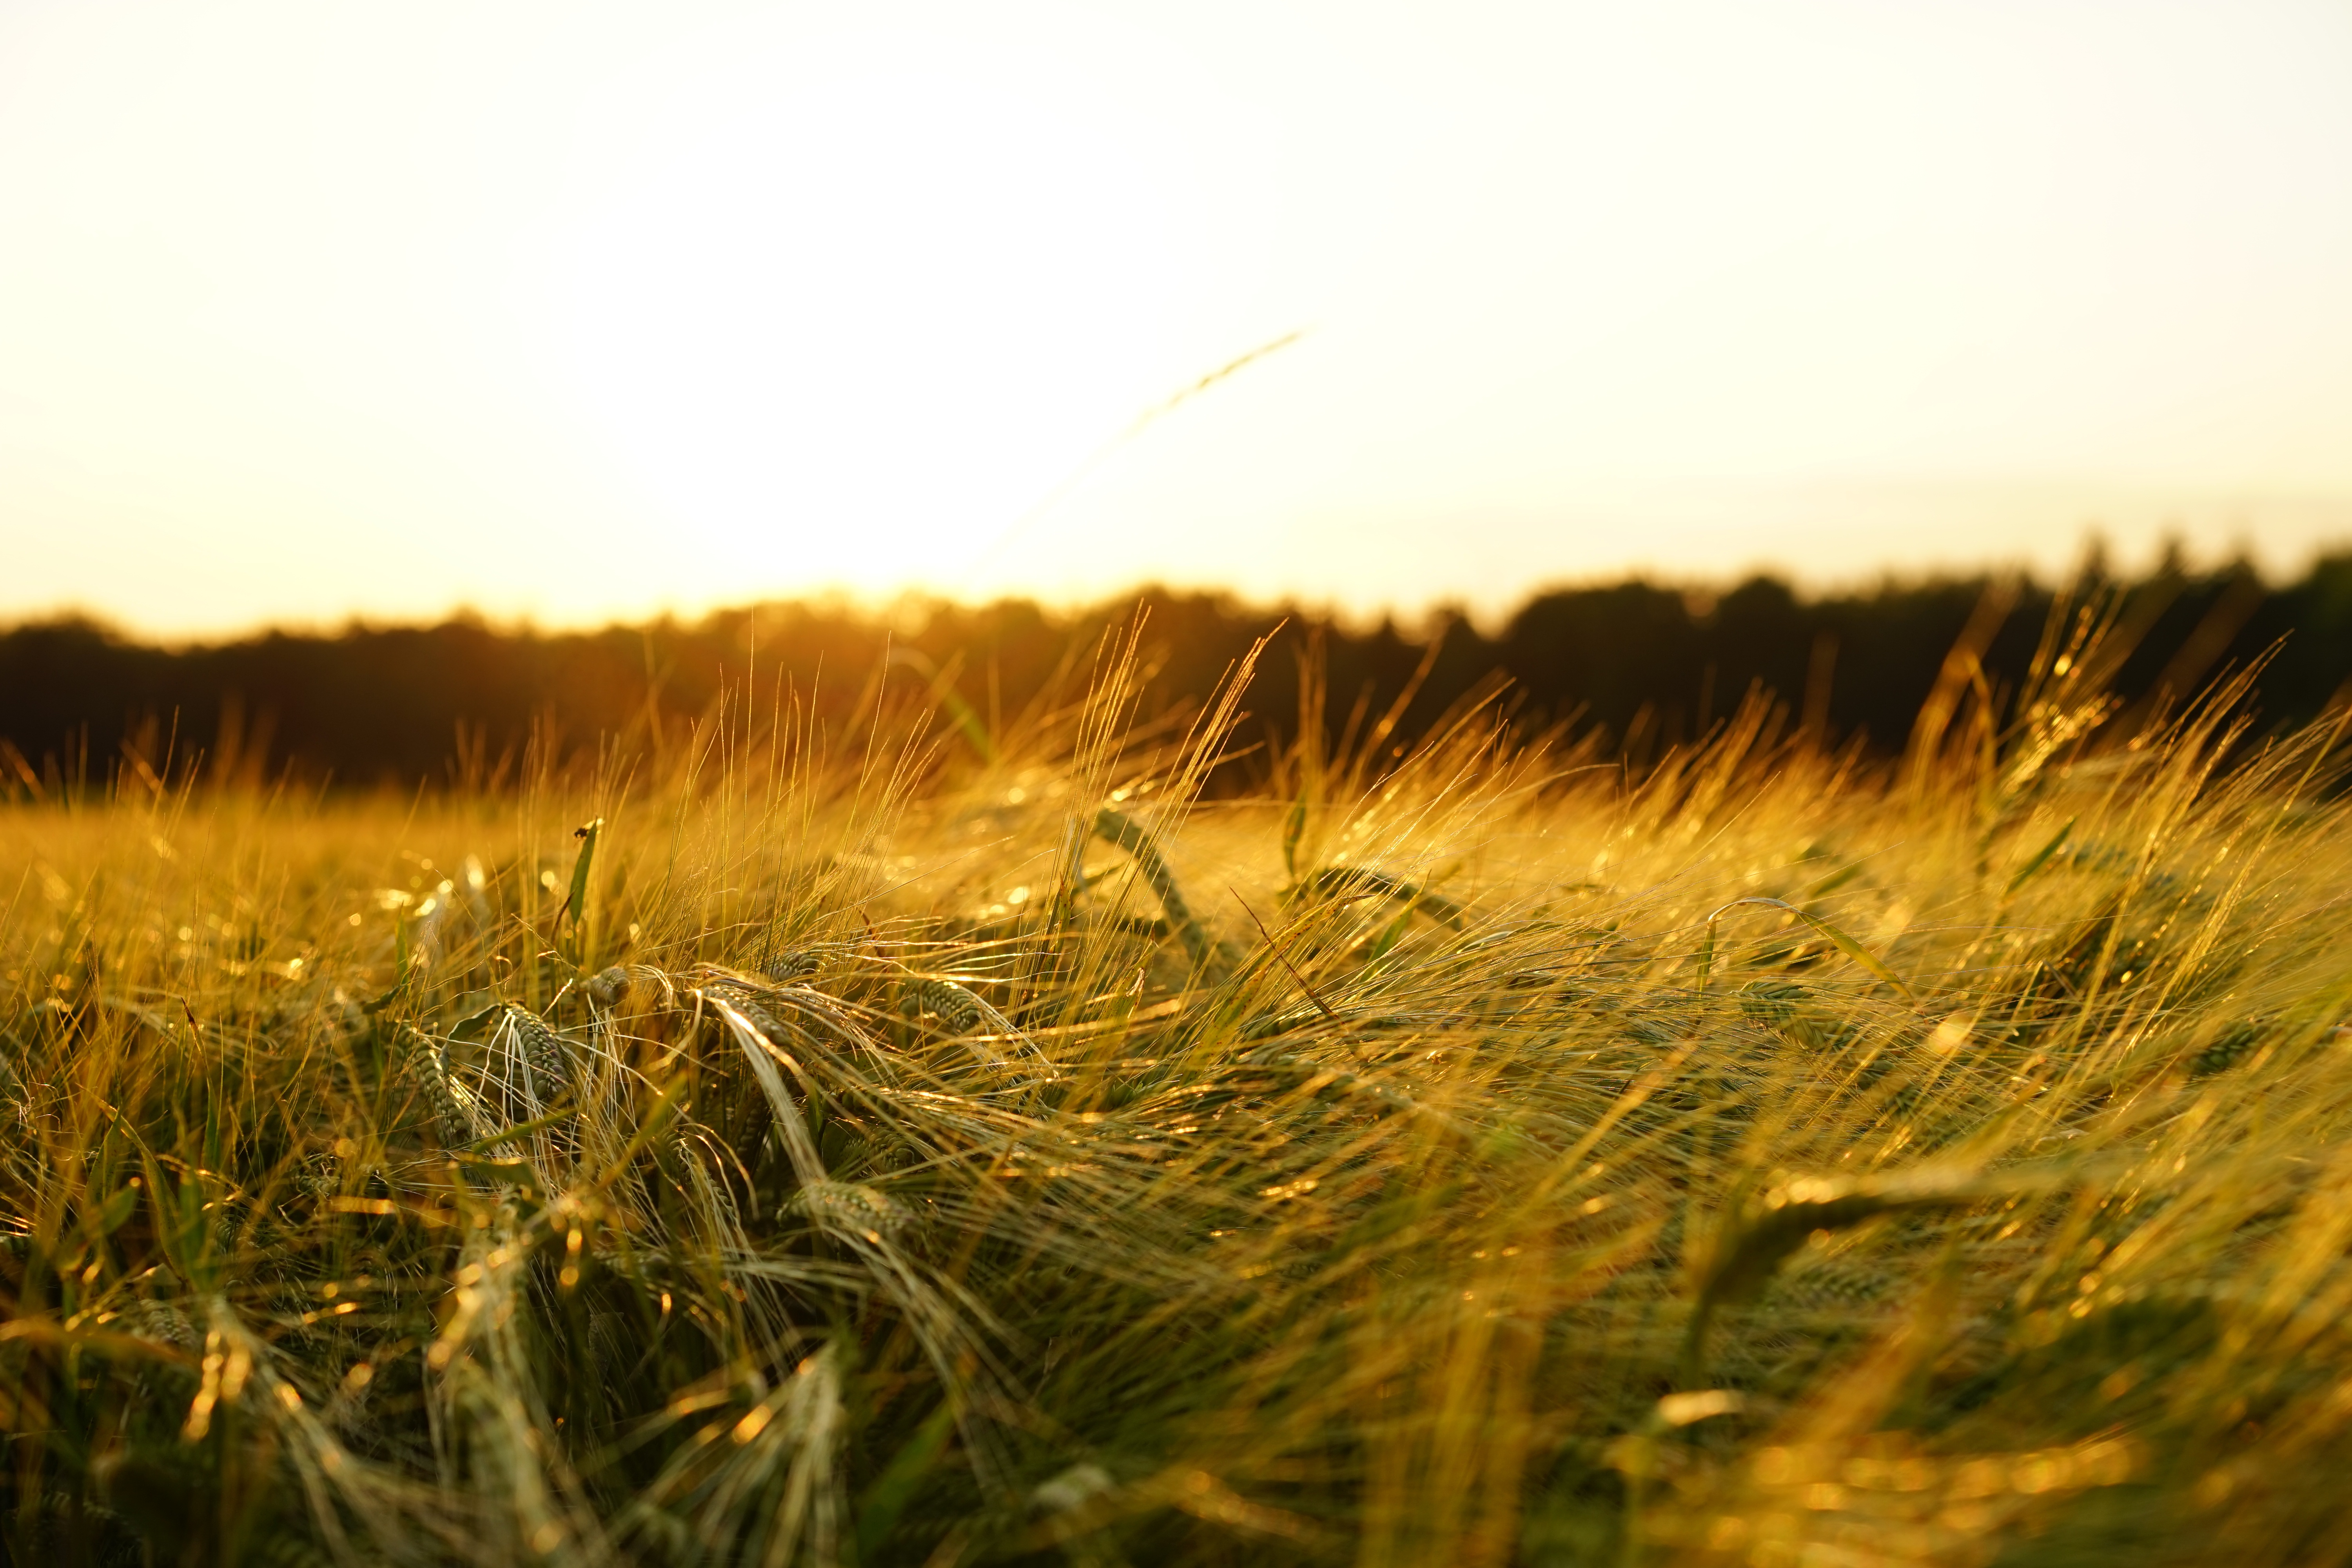 Plant wheat, nature, wheat, field, sun, sunset, freedom, country sunset, green